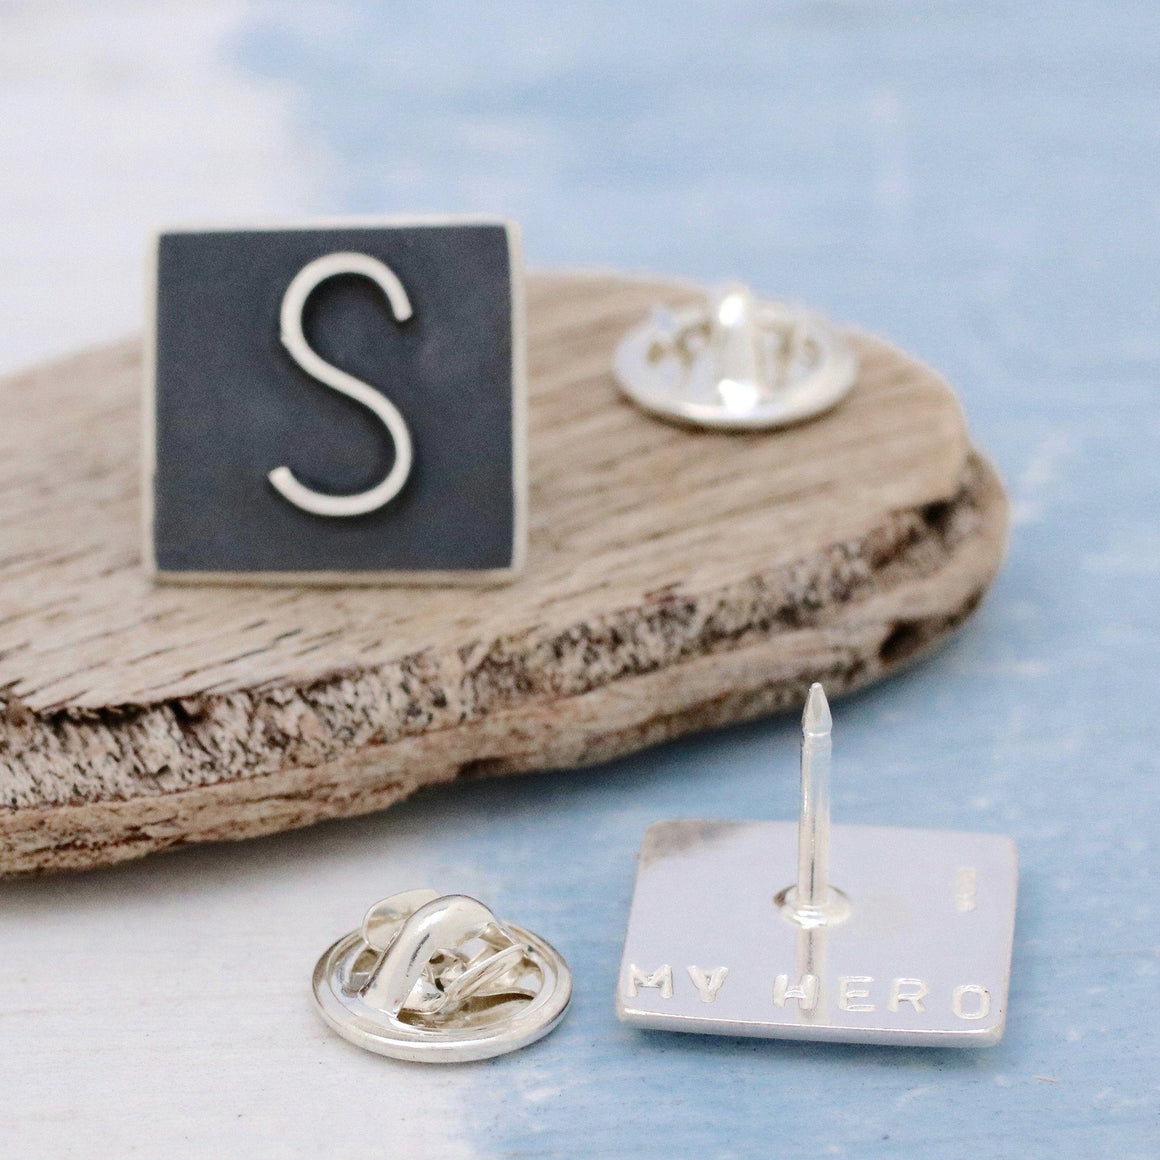 Personalised Silver and Black Initial Lapel Tie Pin